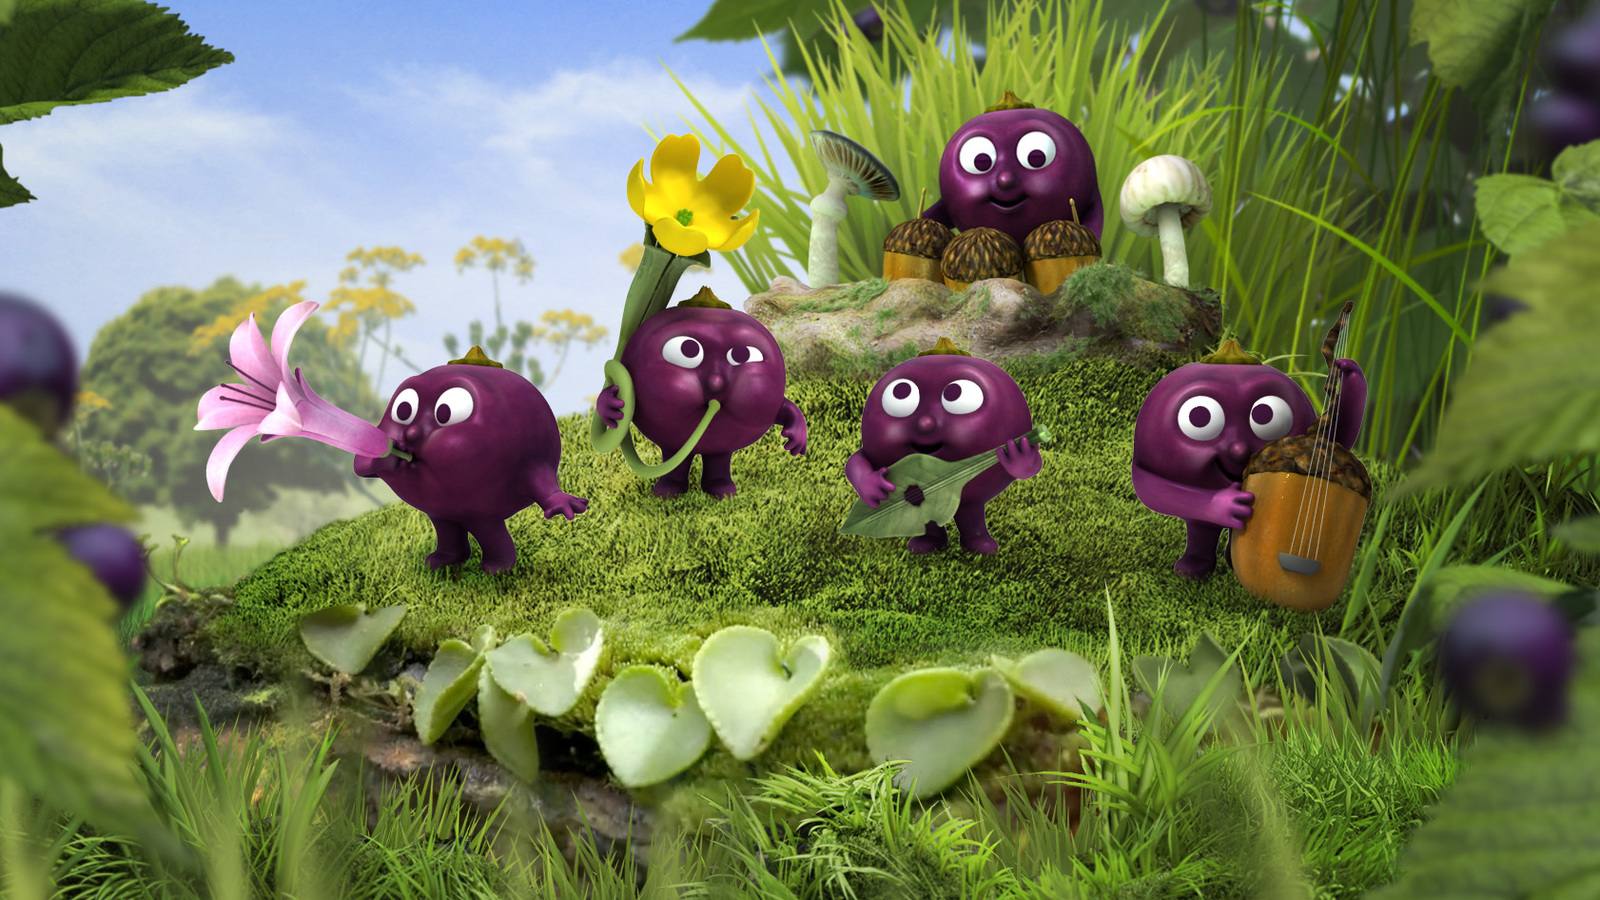 final render of ribena berry band in grassy scene with